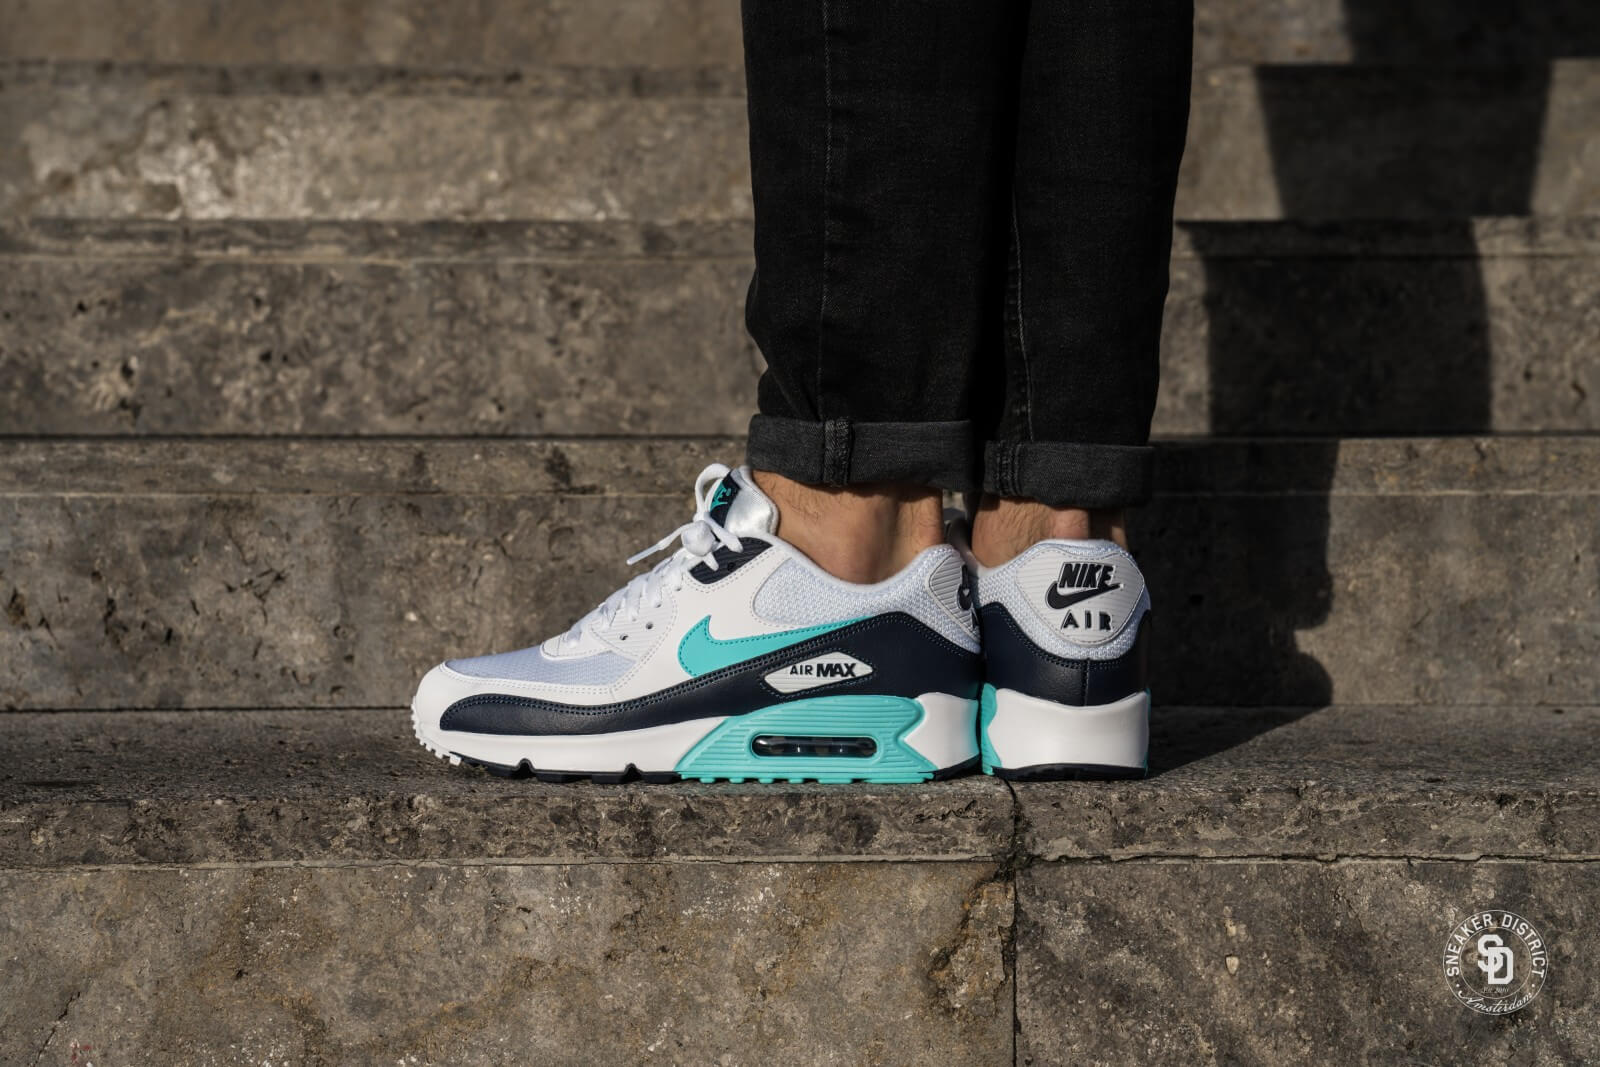 Nike Air Max 90 Essential WhiteAurora Green Obsidian AJ1285 102